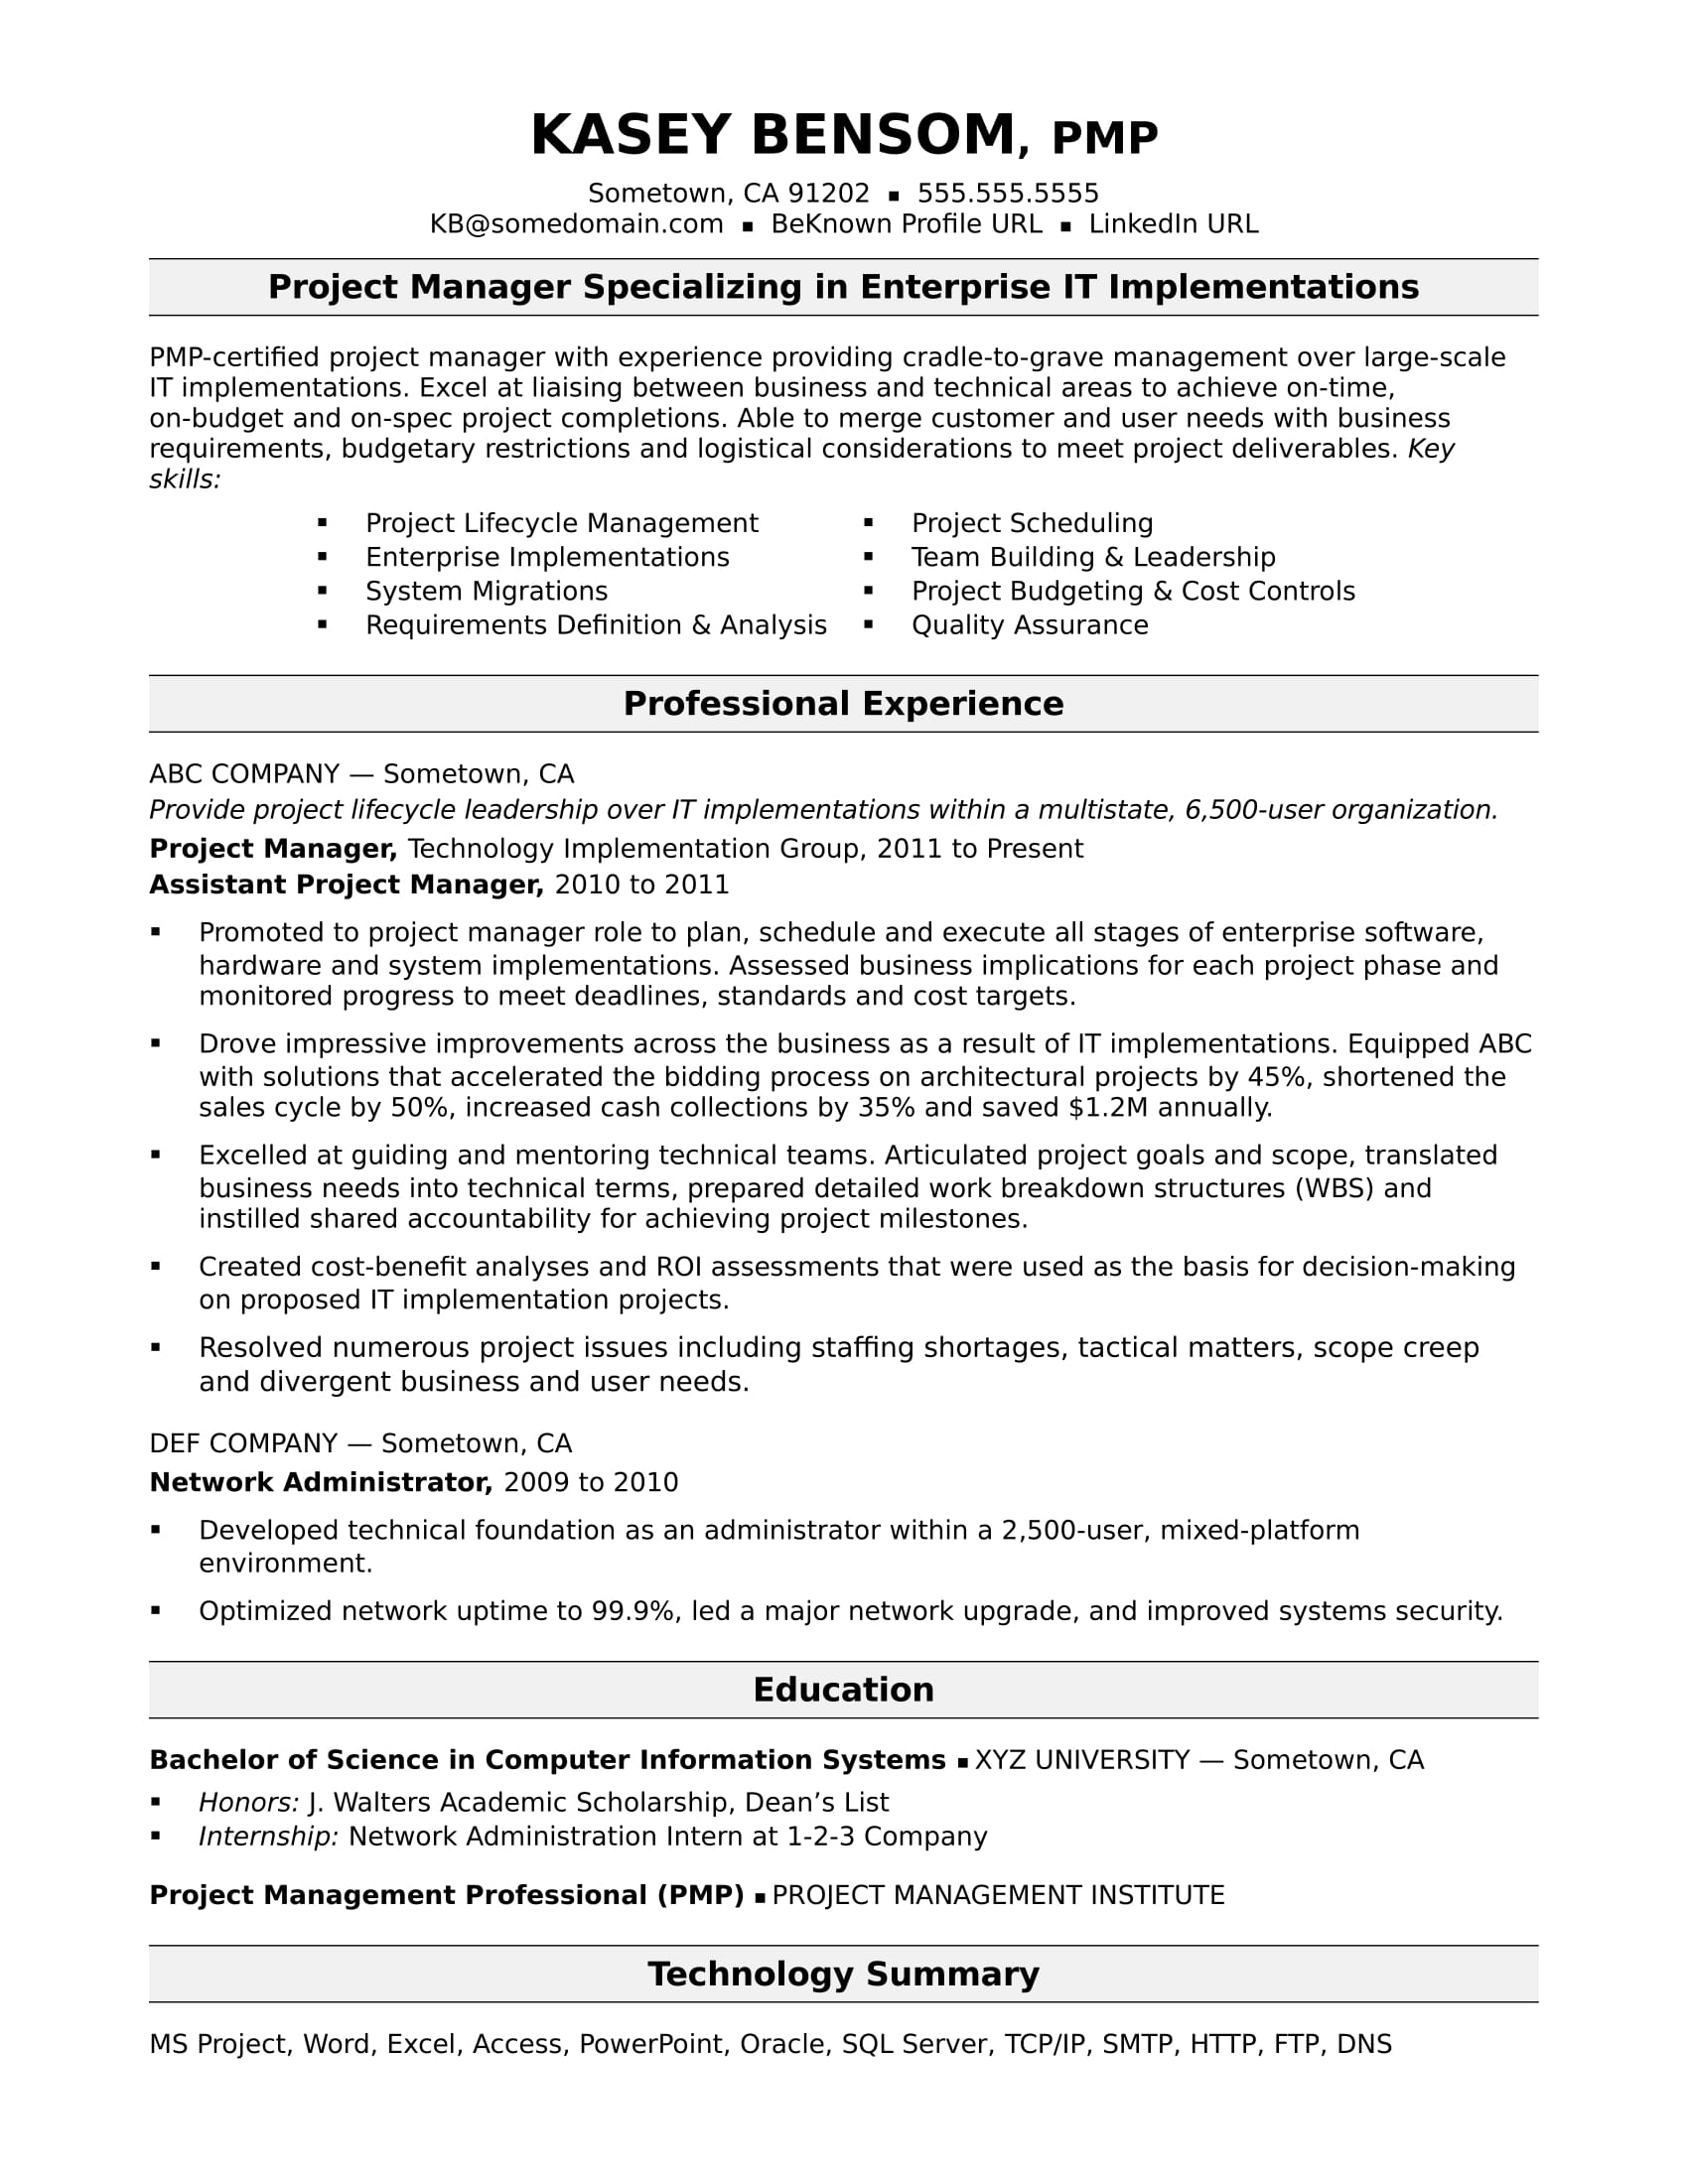 sample resume for midlevel it project manager monster management experience great samples Resume Project Management Experience Resume